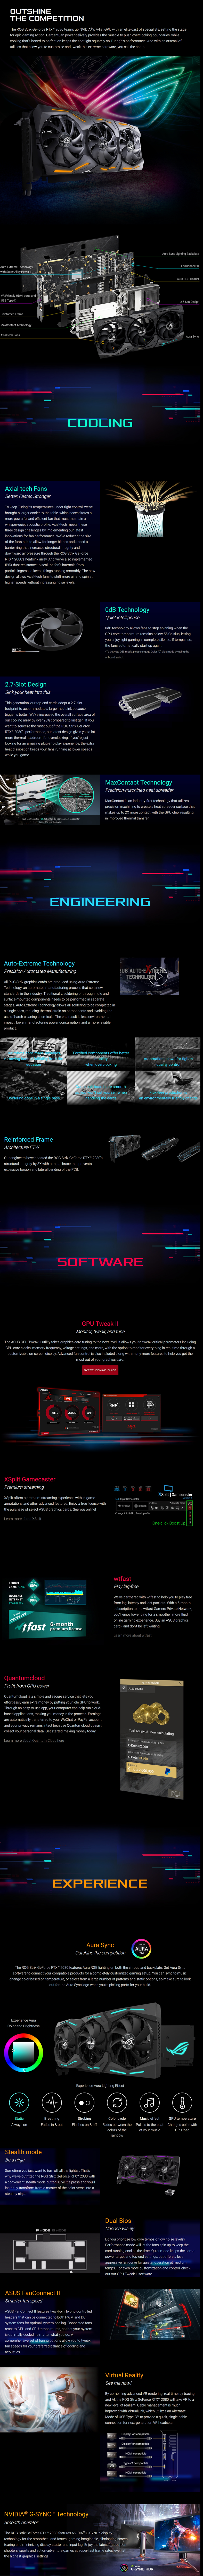 A large marketing image providing additional information about the product ASUS GeForce RTX2080 Super ROG Strix OC 8GB GDDR6 - Additional alt info not provided